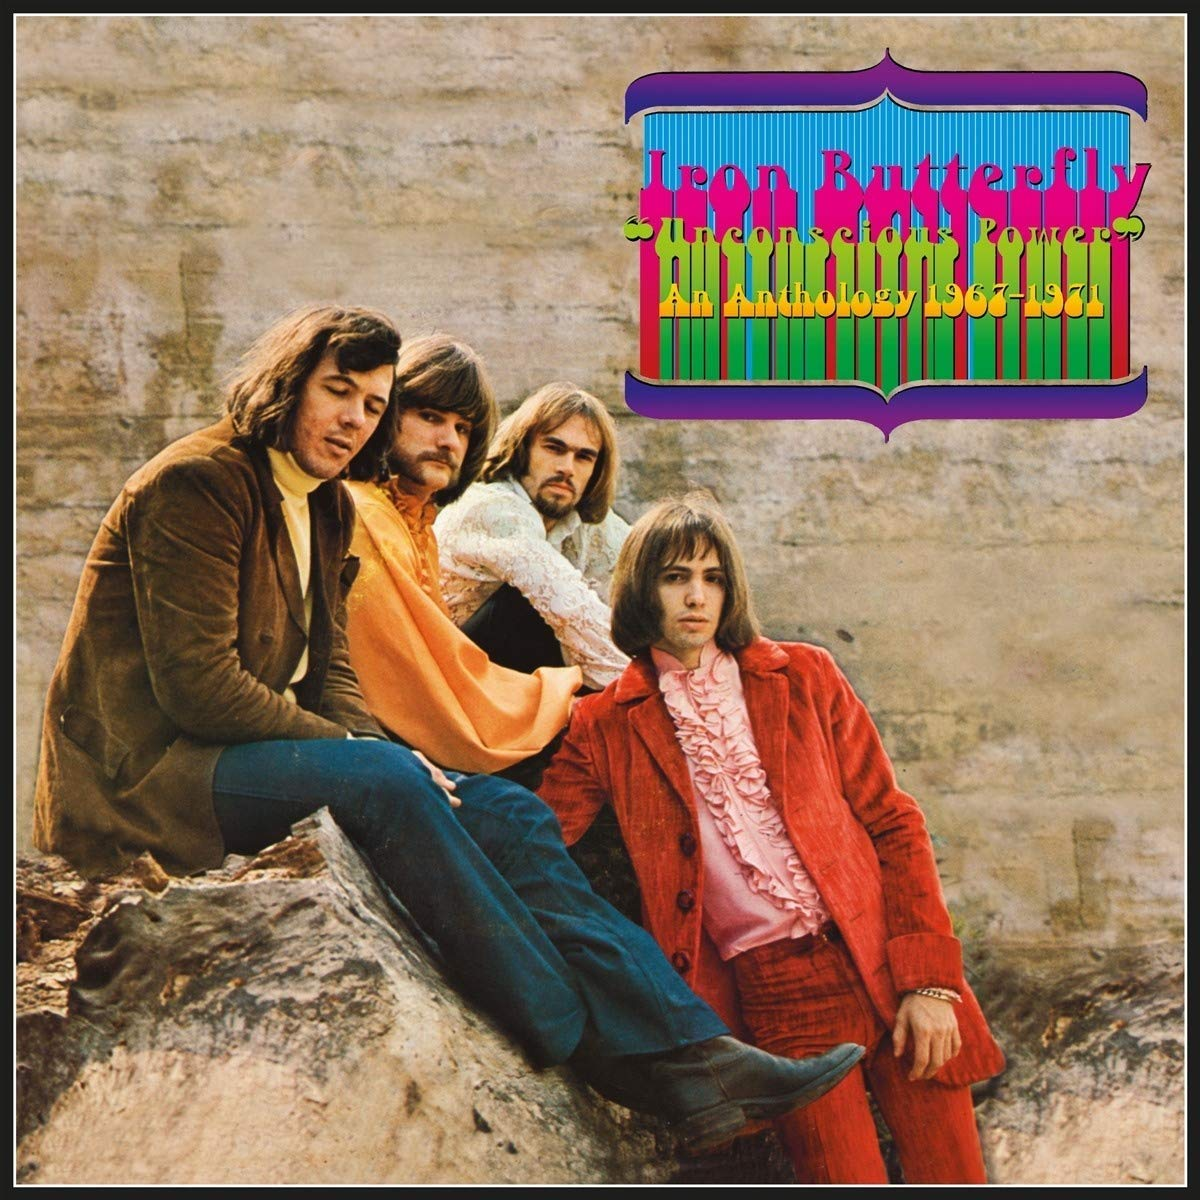 Iron Butterfly – Unconscious Power  An Anthology 1967-1971 (2020) [FLAC]